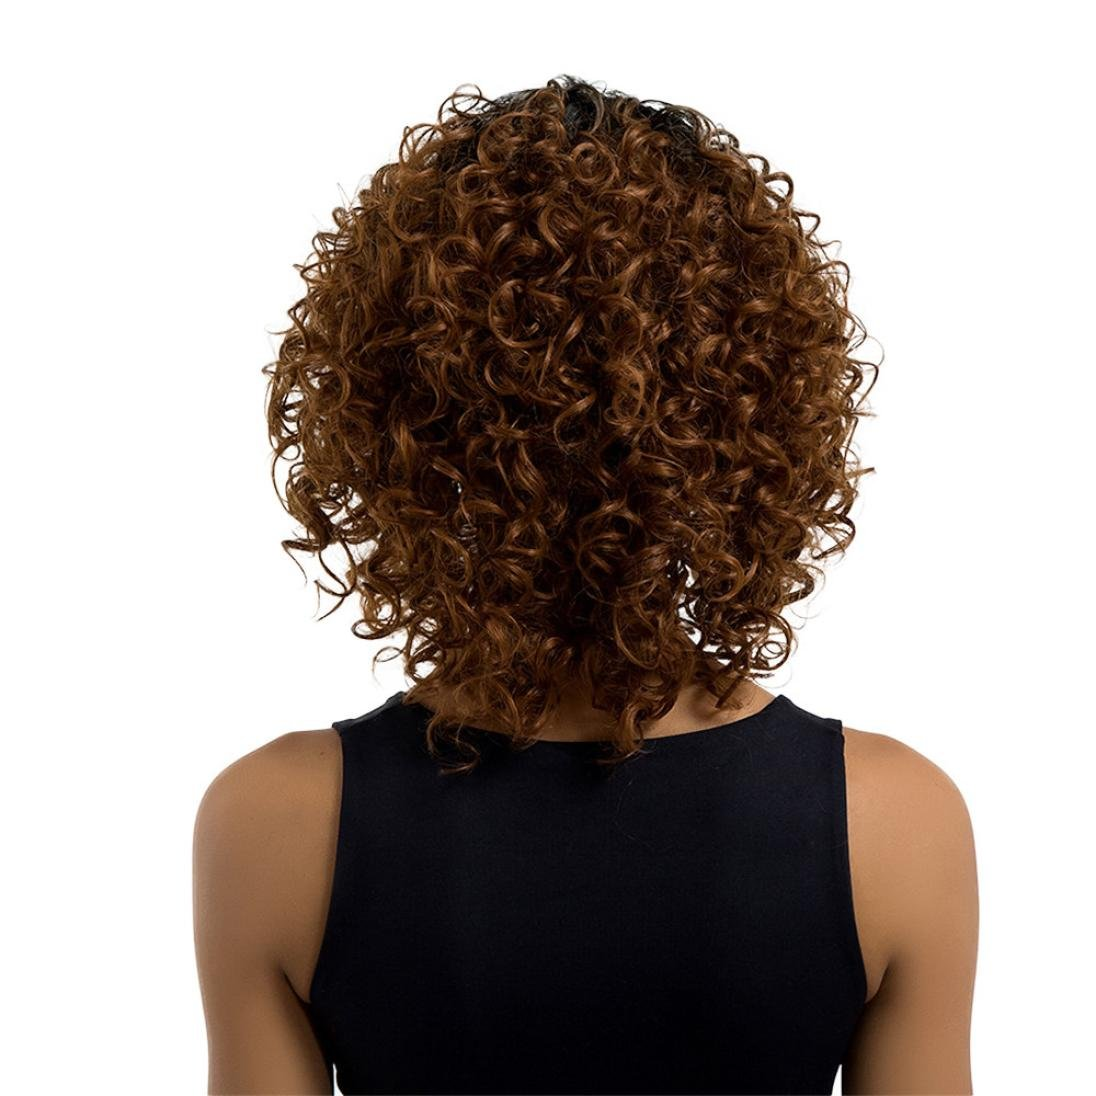 Inkach - Short Curly Wig ❤️ Womens Long Lace Front Wavy Bob Wig ❤️ Heat Resistant Synthetic Hair Full Wigs (Brown) by Inkach - (Image #2)